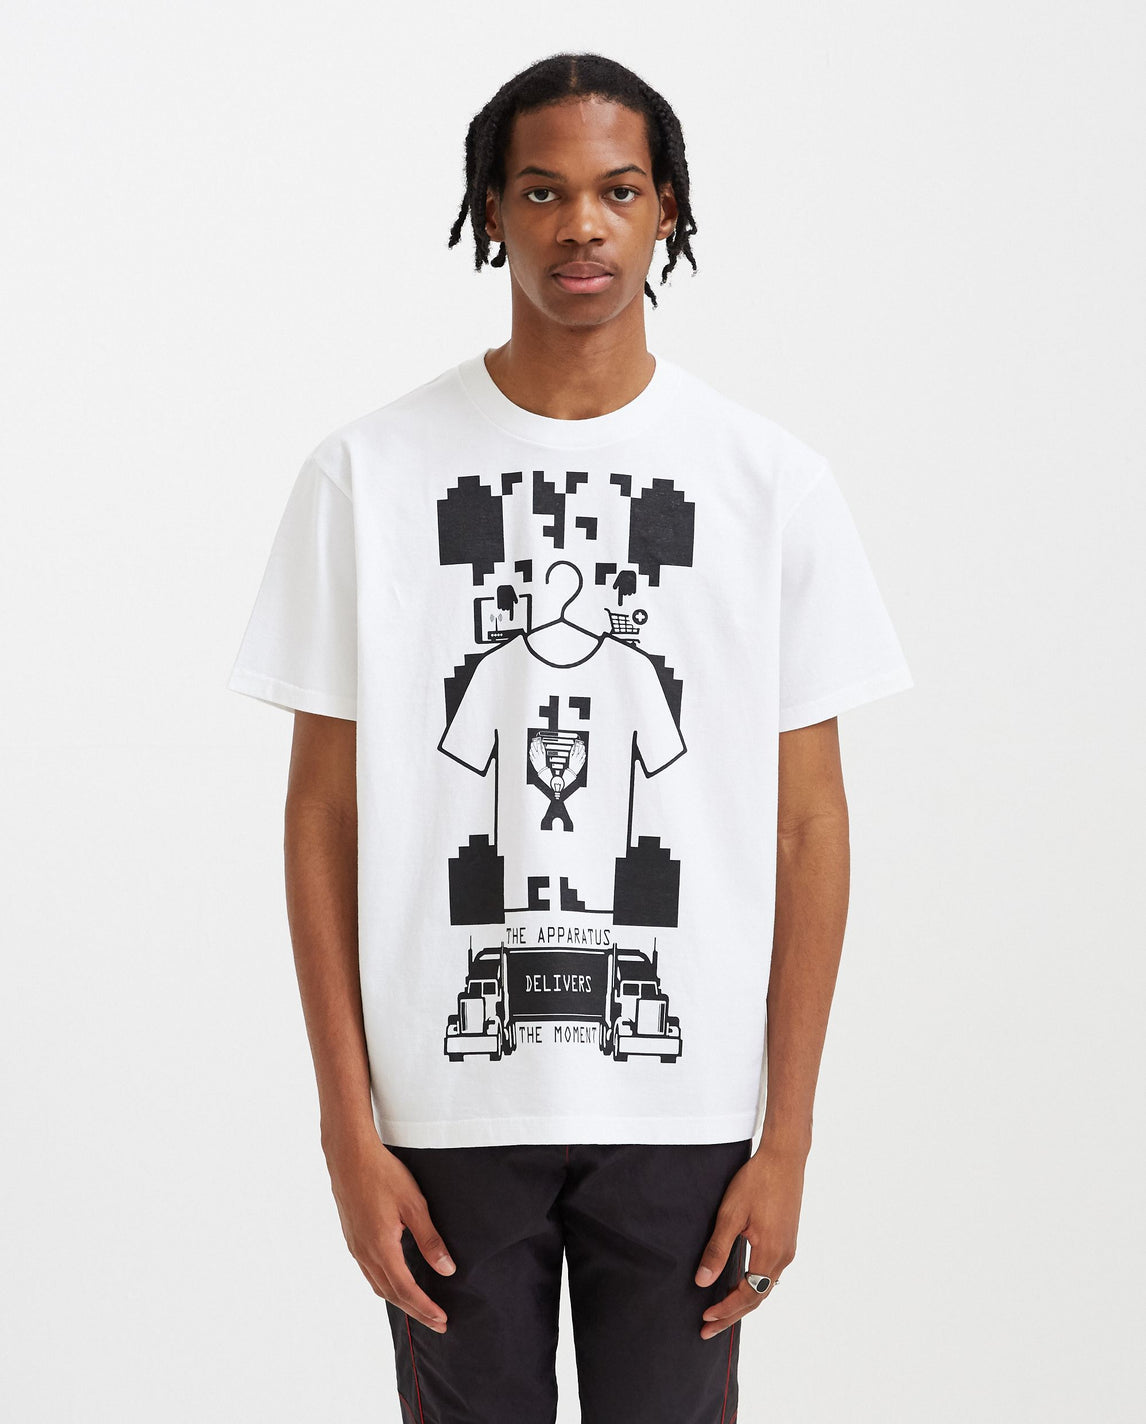 The Apparatus Delivers T-Shirt - White MENS CAV EMPT